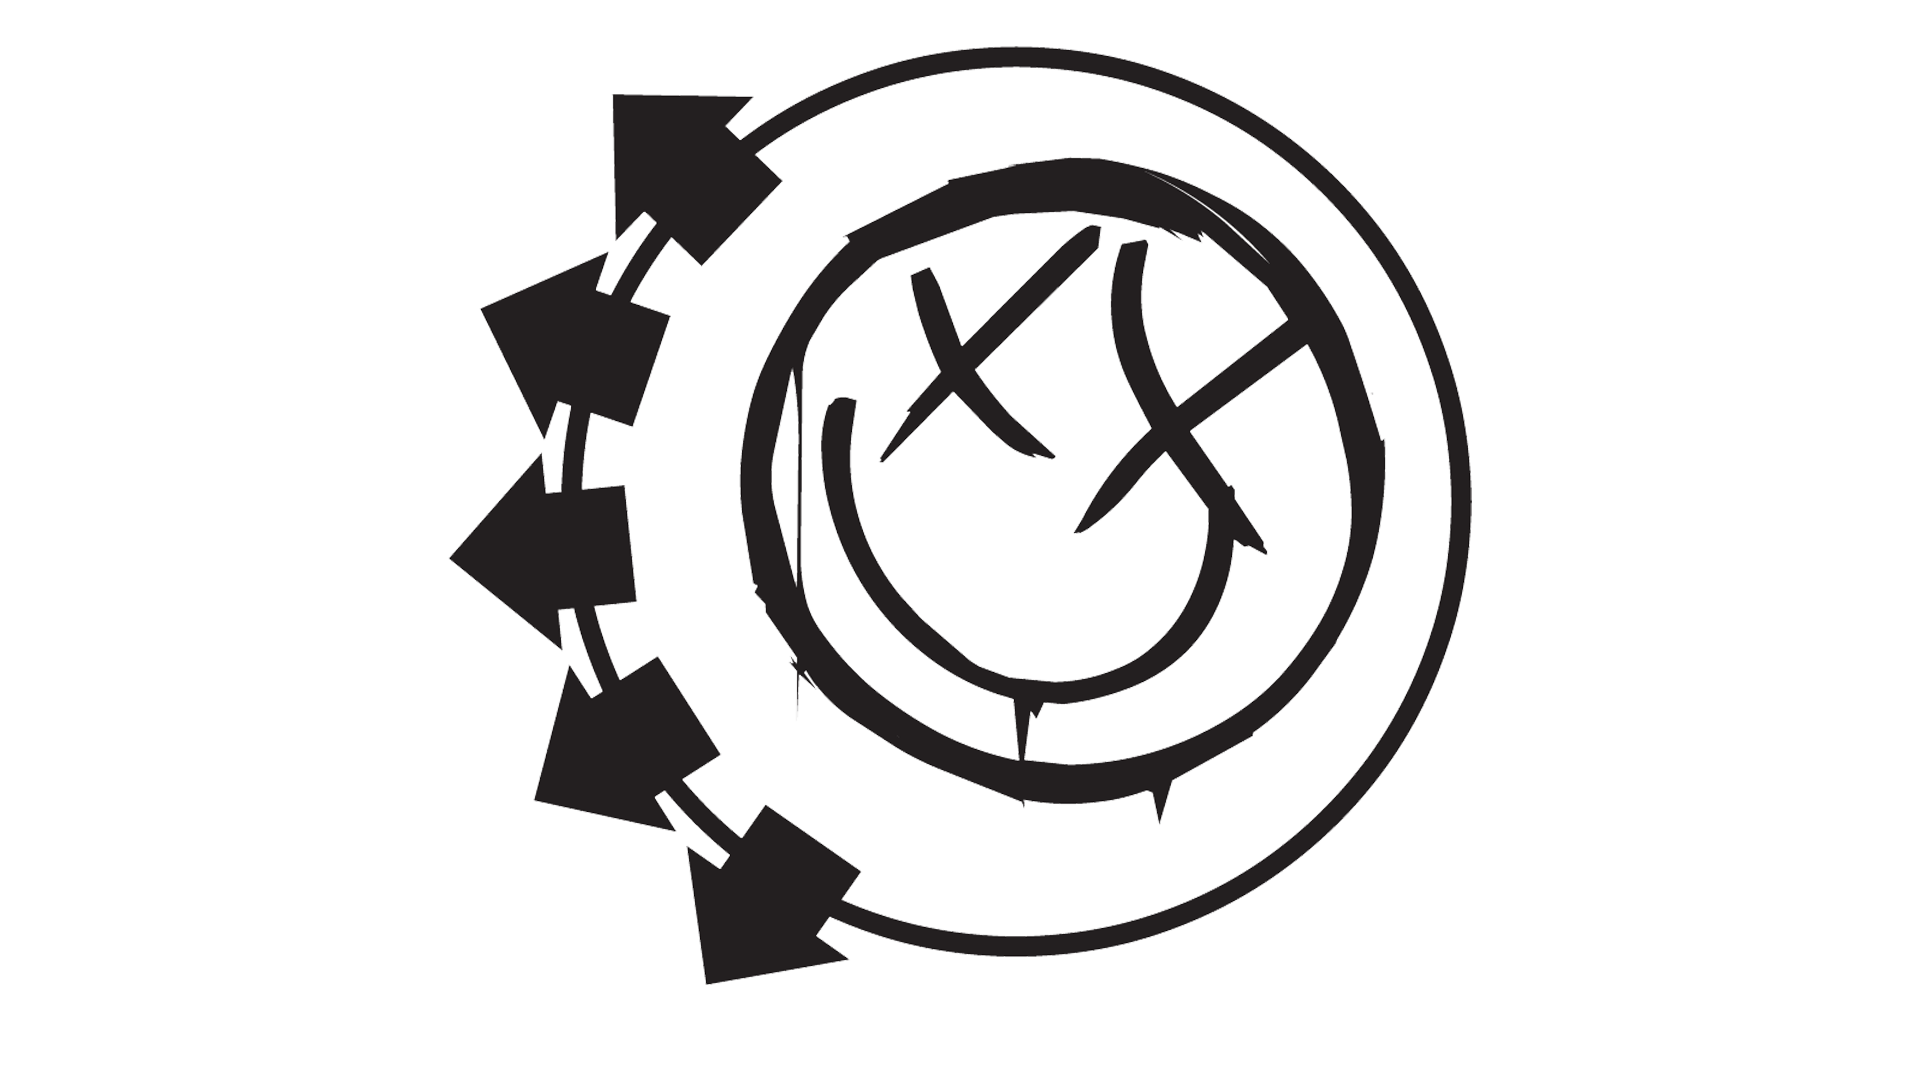 Blink 182 smiley png. Logo symbol meaning history